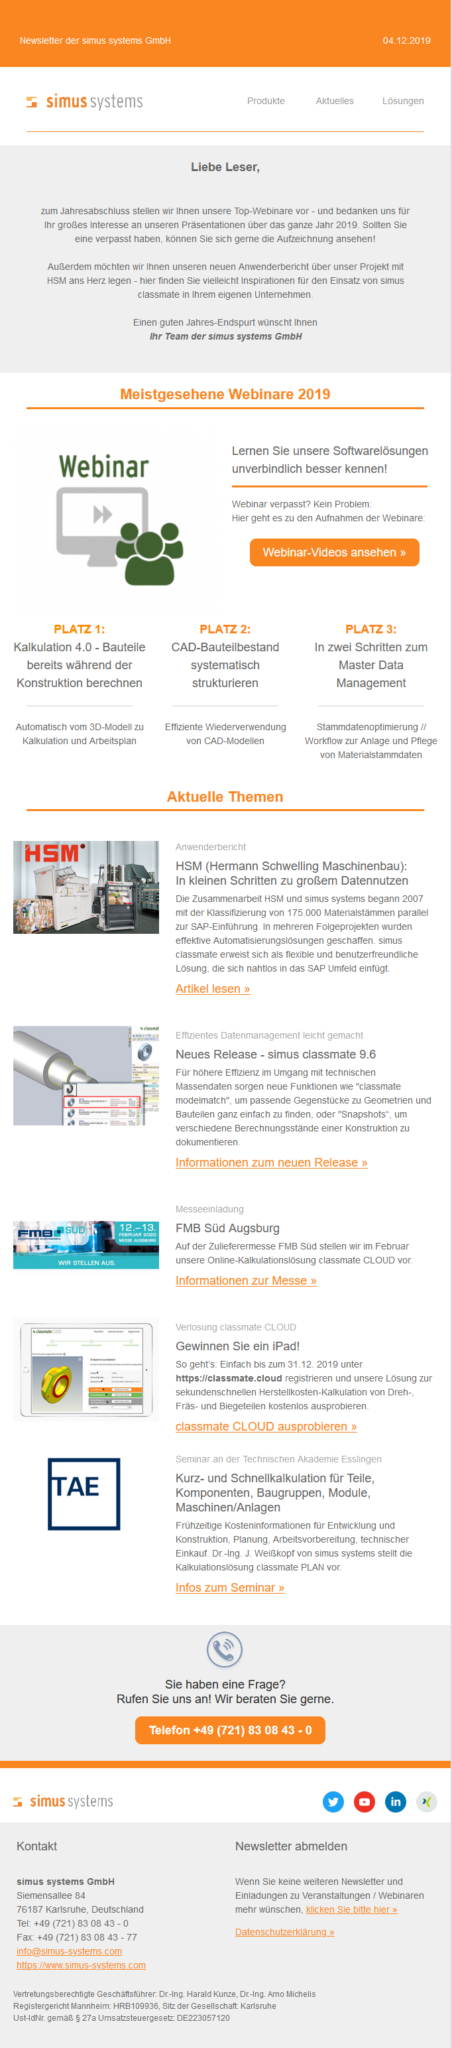 Newsletter_simus_systems